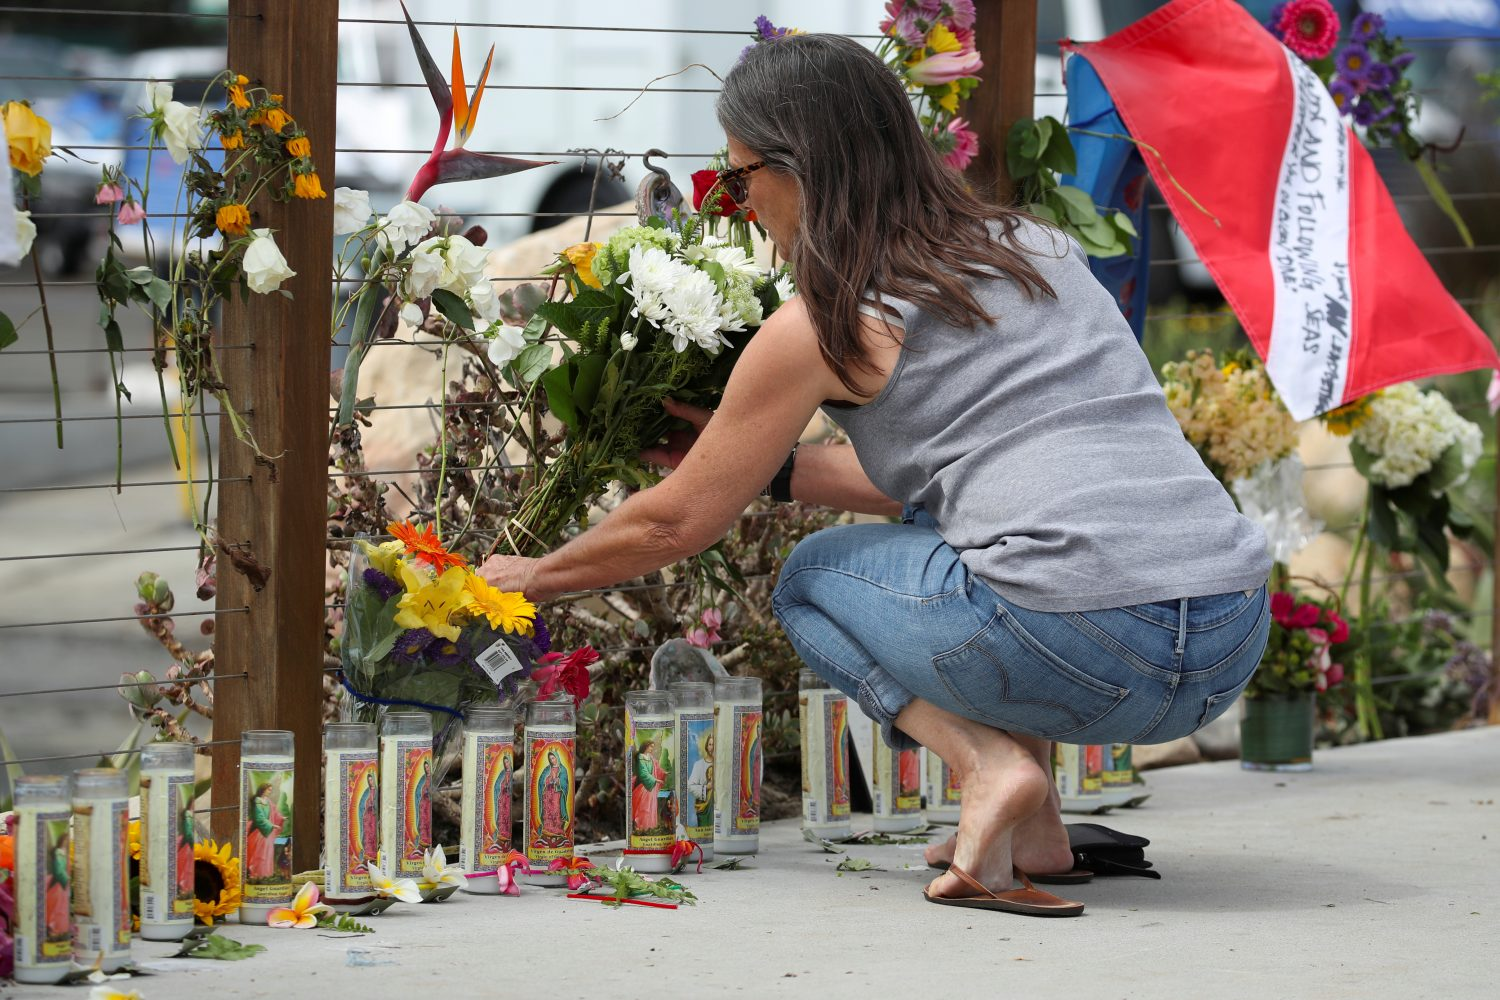 FILE PHOTO: A woman places flowers at a makeshift memorial near Truth Aquatics as the search continues for those missing in a pre-dawn fire that sank a commercial diving boat near Santa Barbara, California, U.S., September 3, 2019. REUTERS/Mike Blake/File Photo